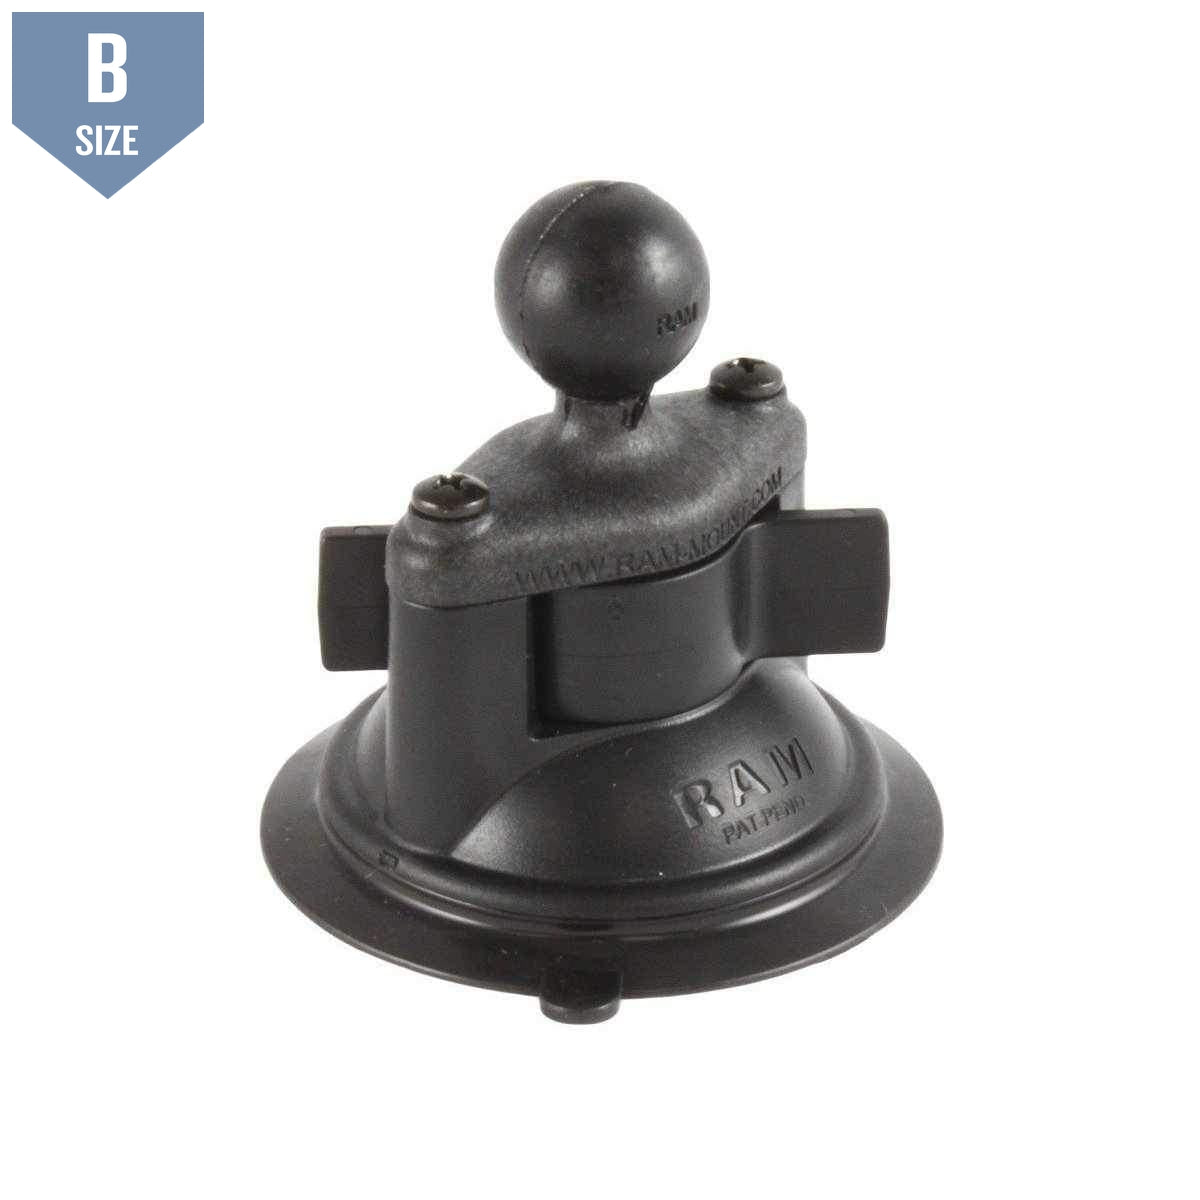 "RAM Composite Suction Cup Base w 1"" Ball (RAP-B-224-1U)-Modest Mounts"